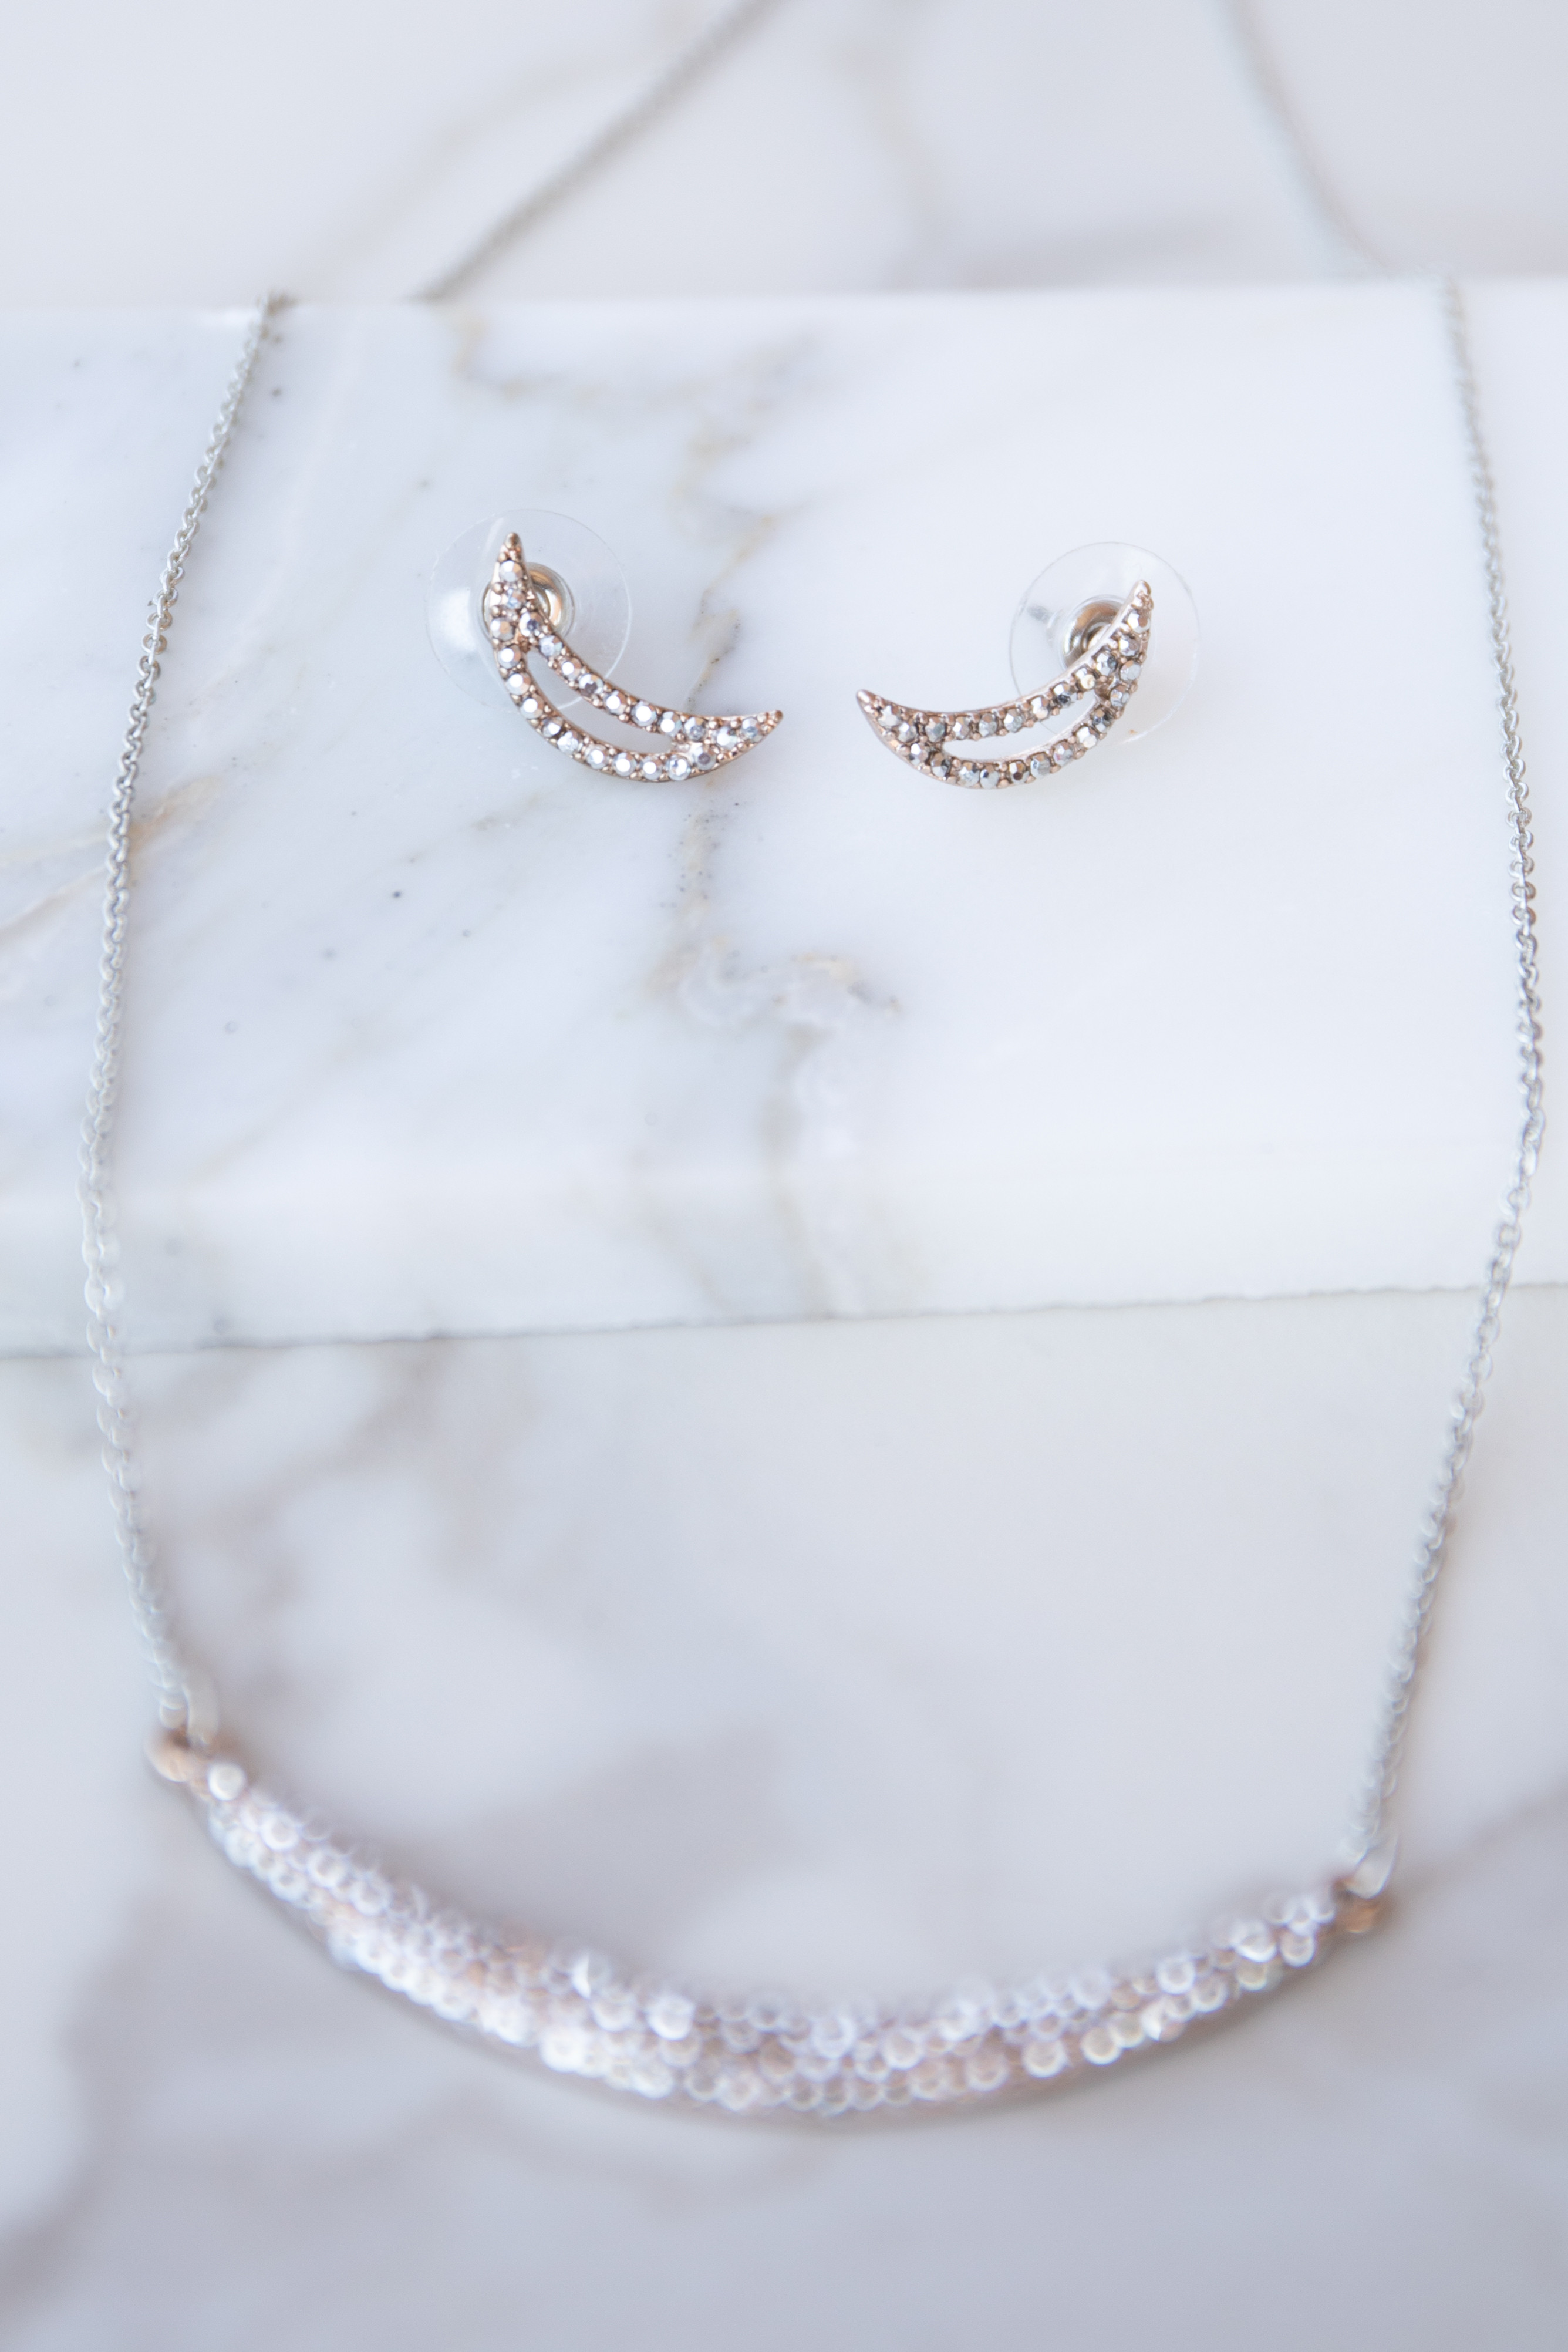 Rose Gold Necklace with Rhinestone Pendant and Earrings Set